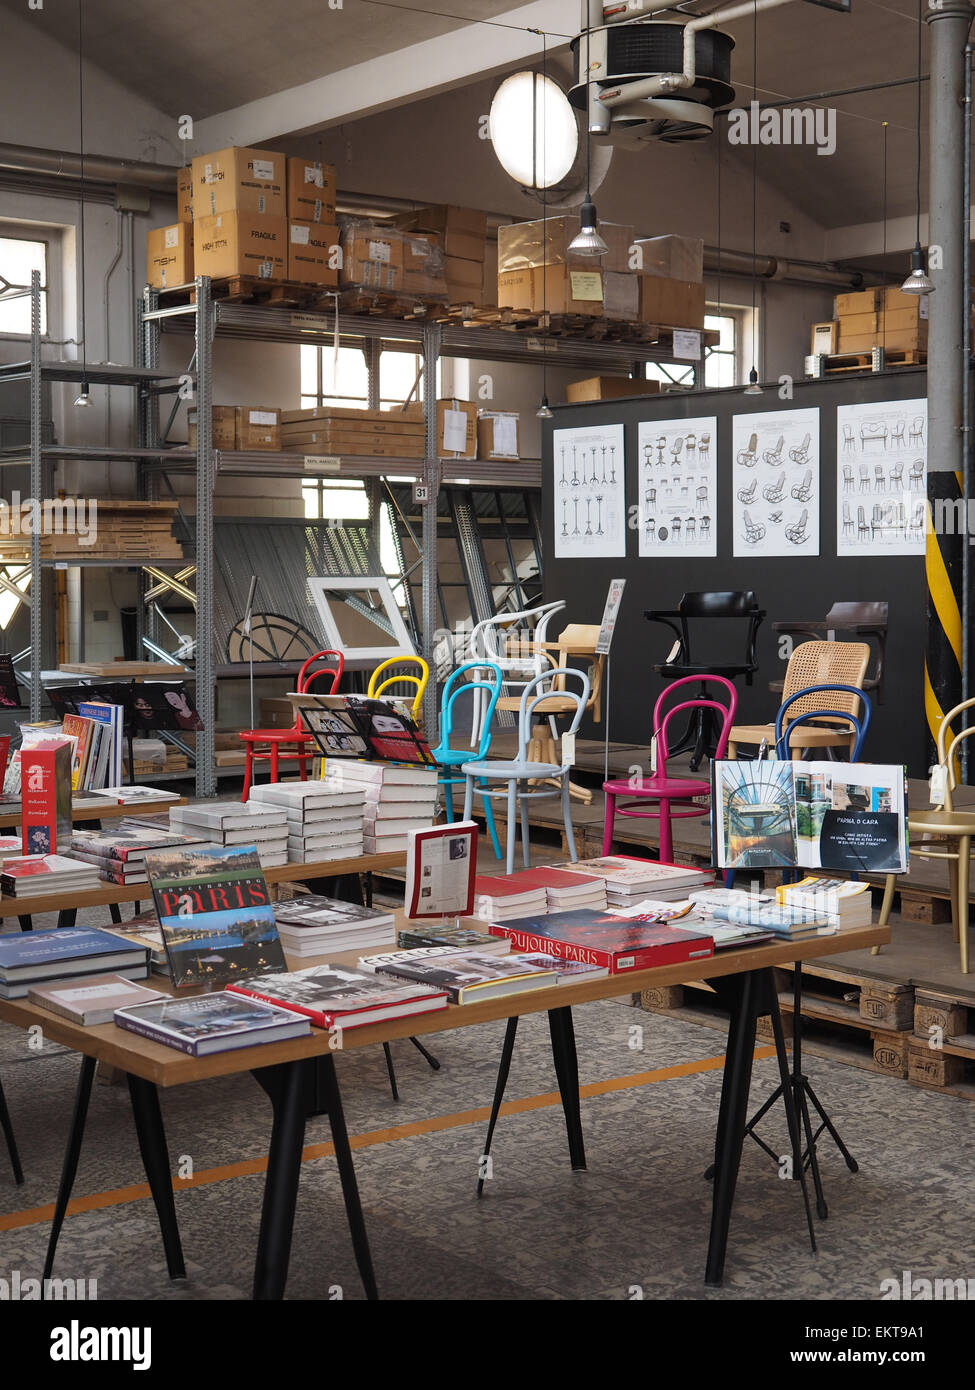 Cargo, Furniture And Kitchen Store, Via Meucci Street, Milan, Lombardy,  Italy, Europe